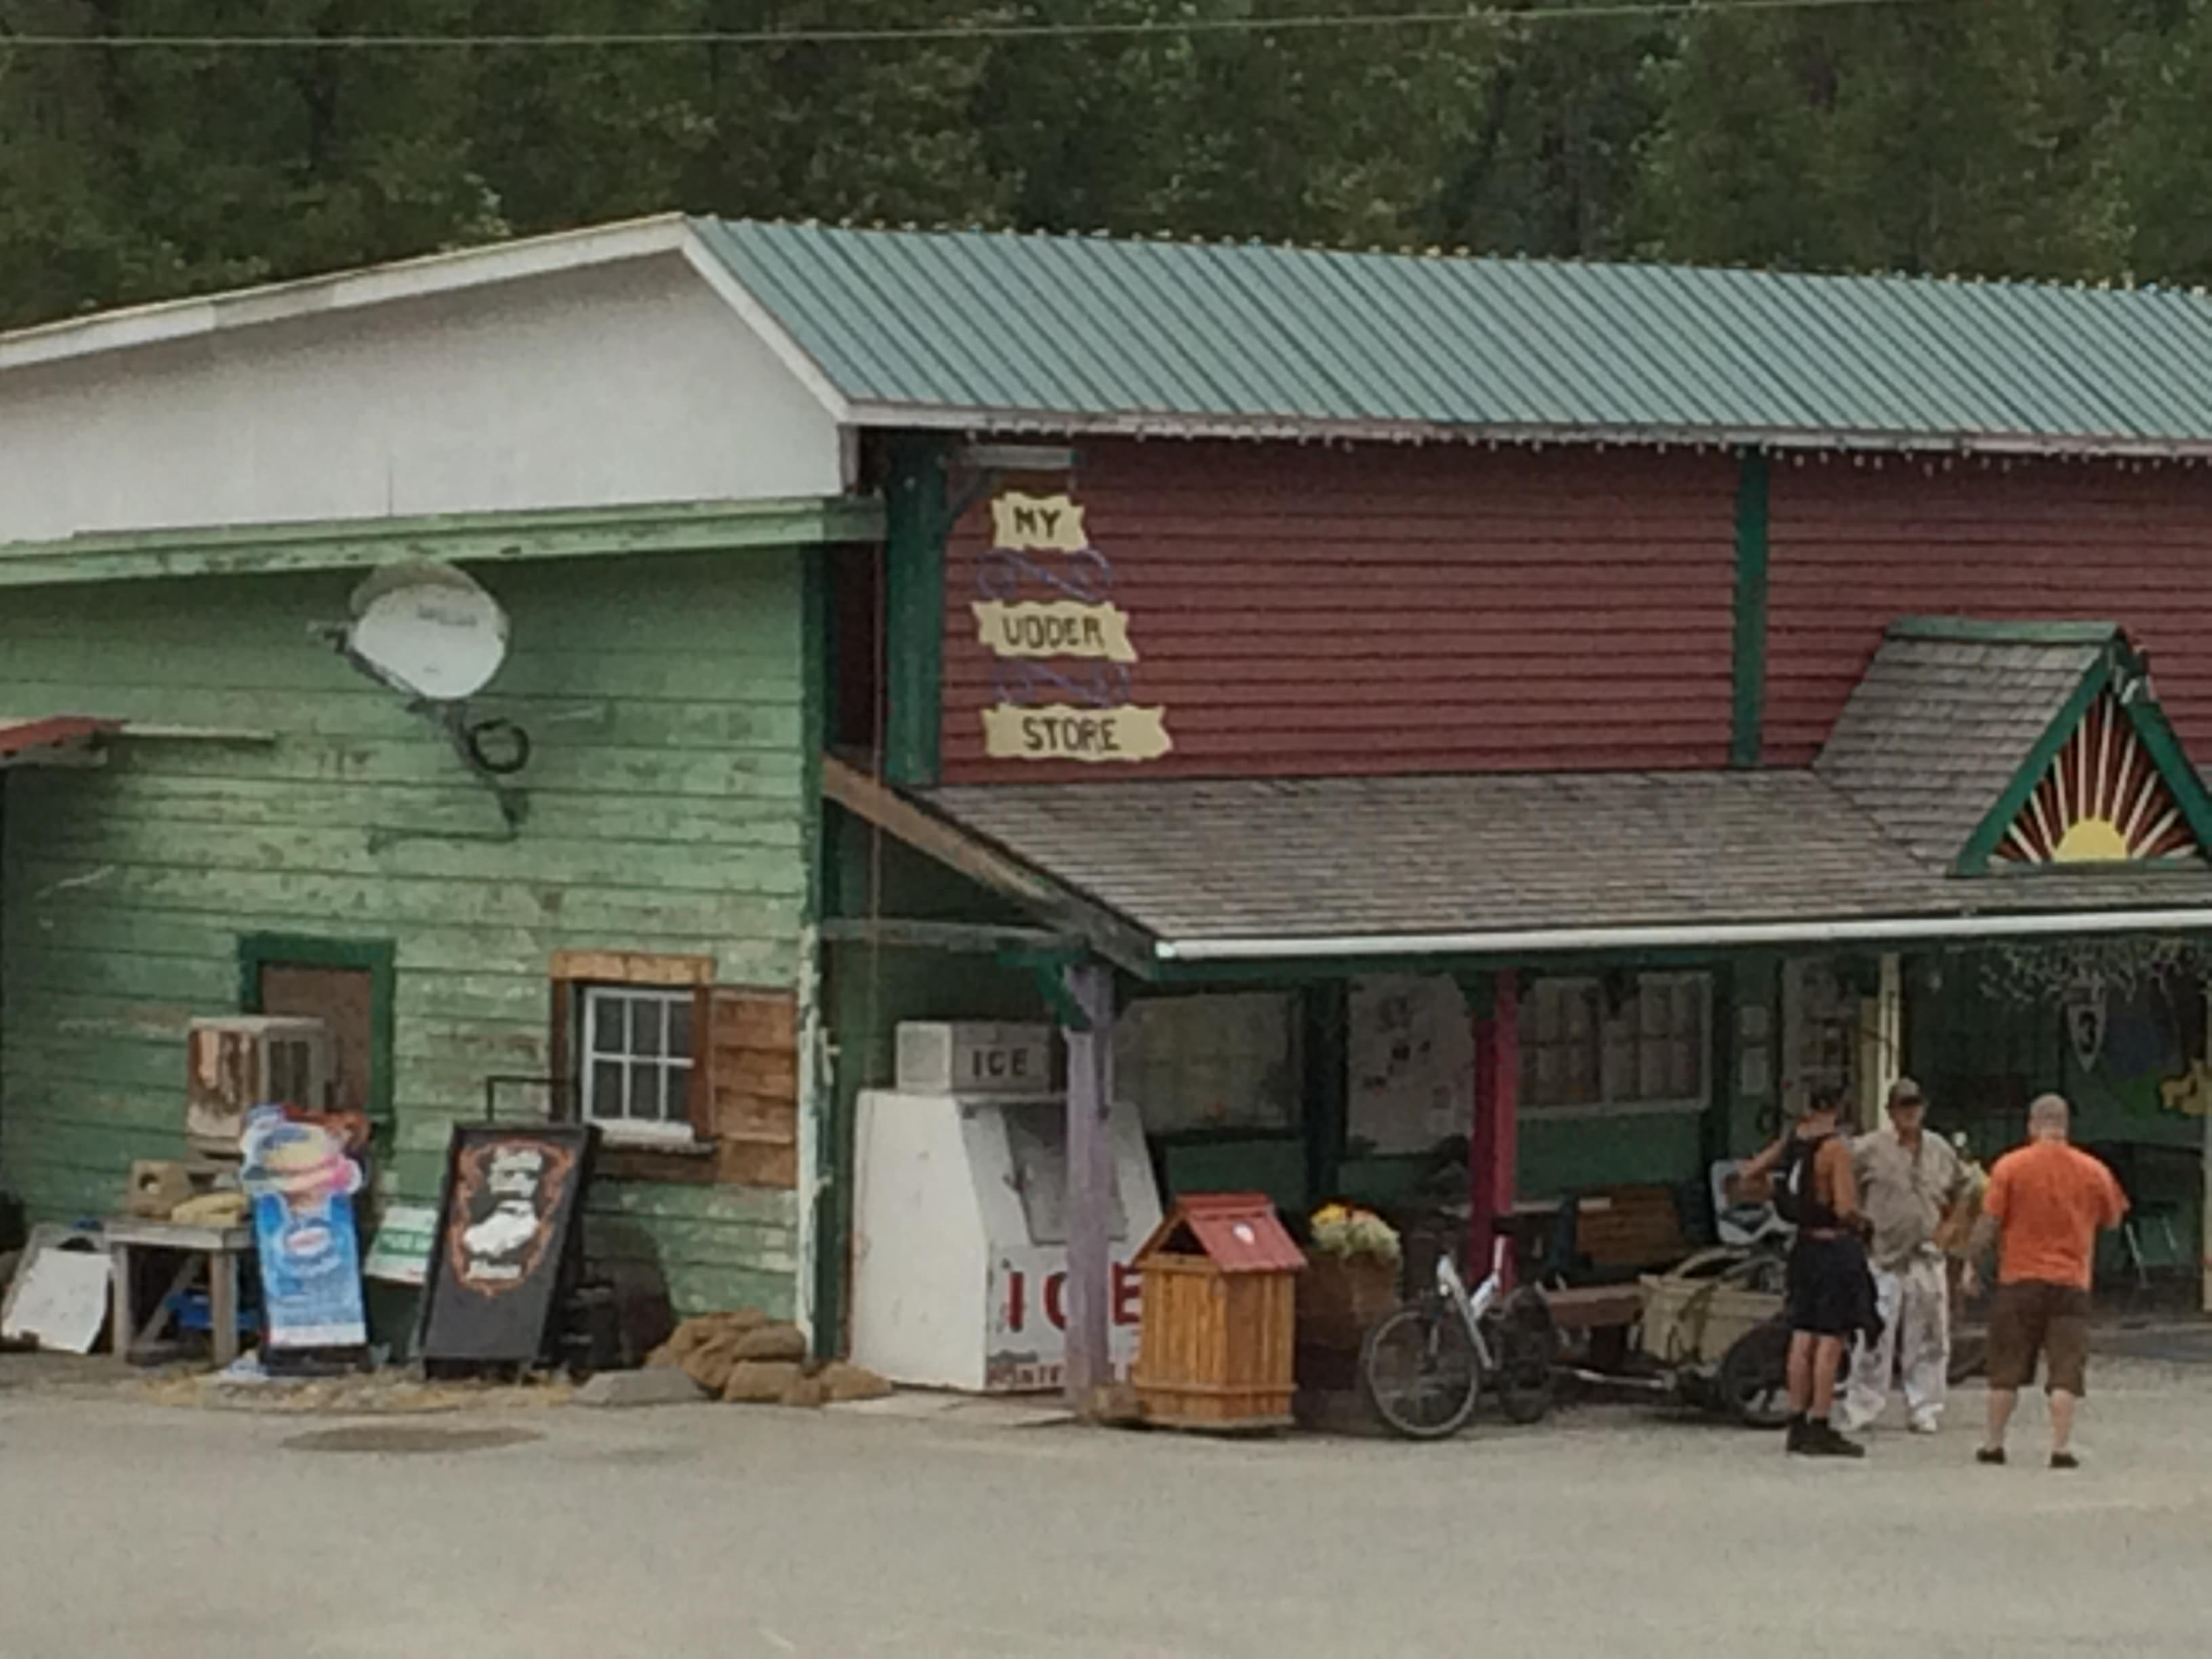 The udder store